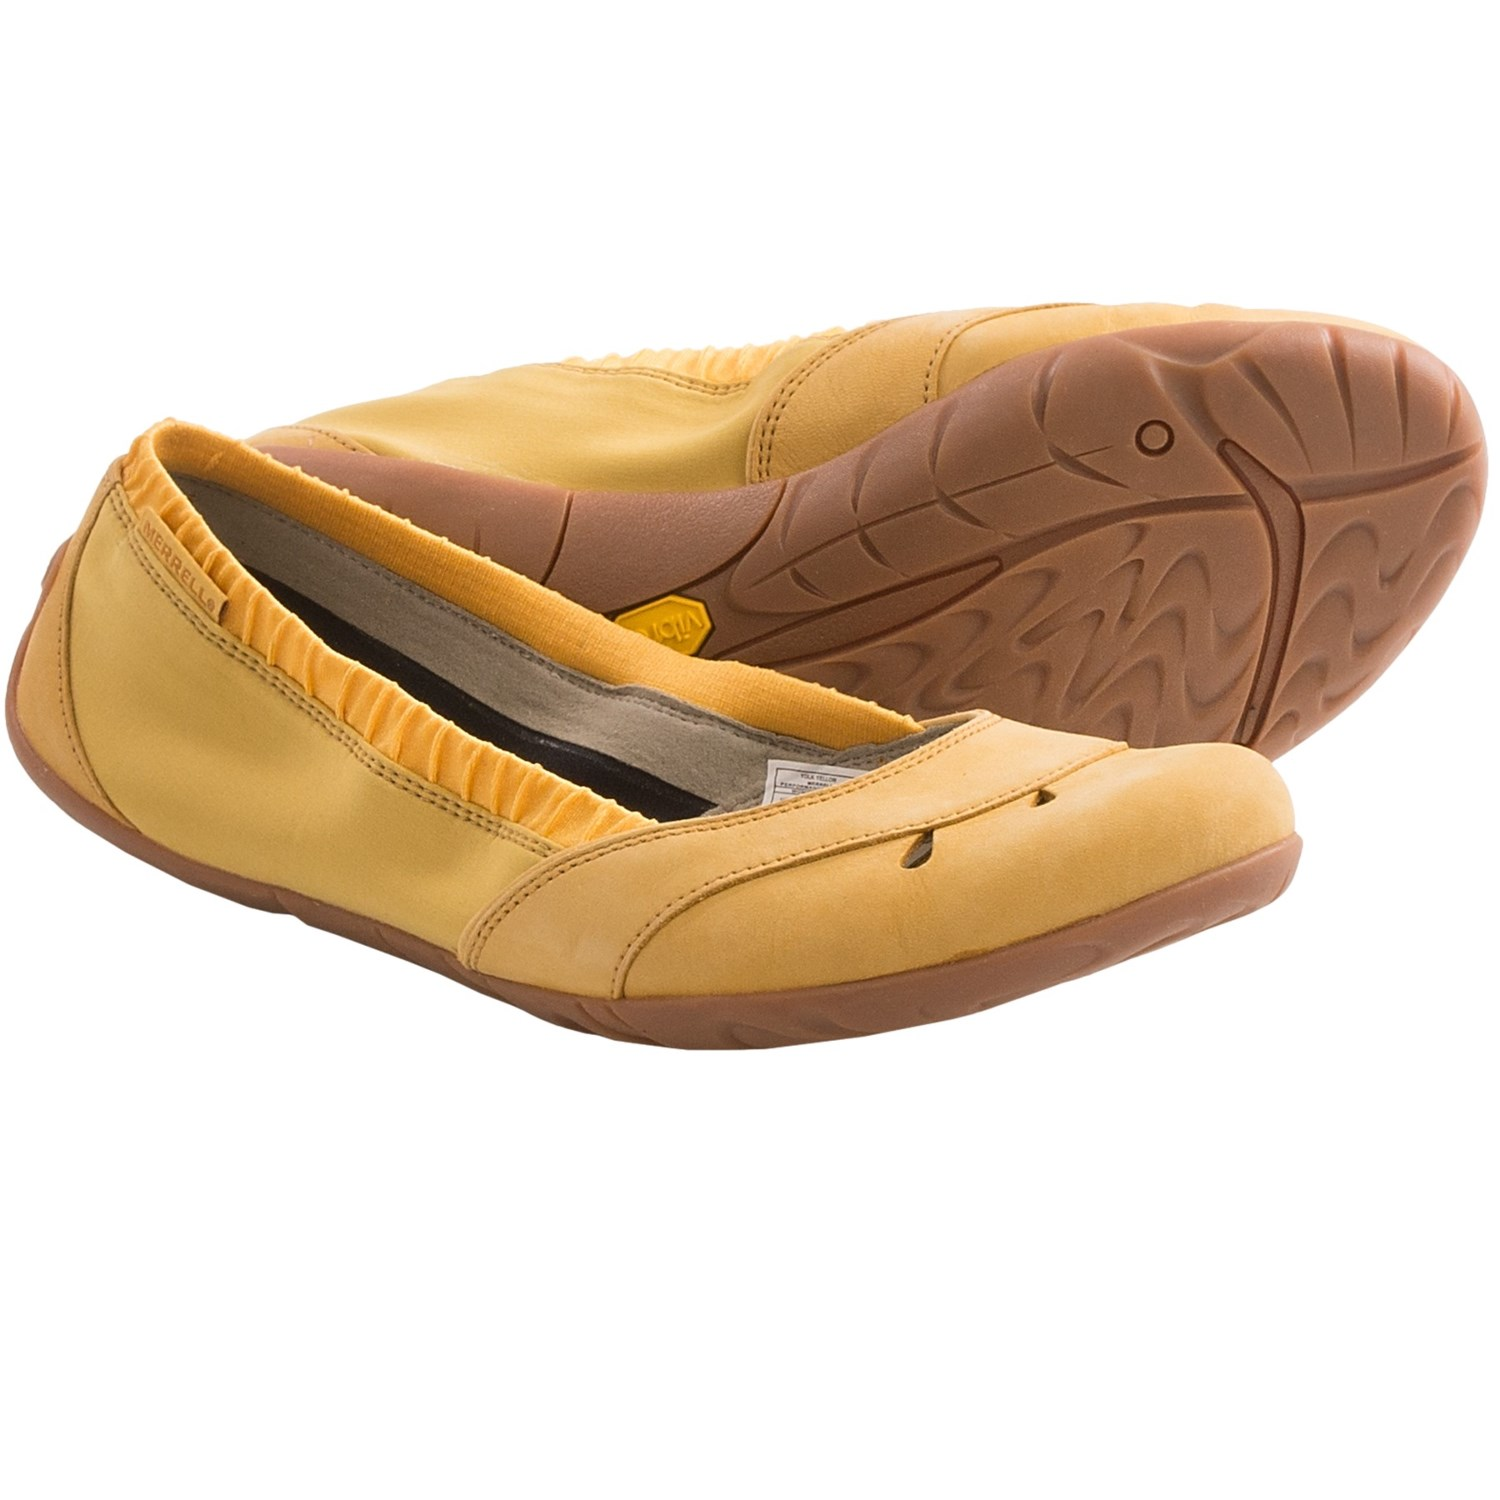 Merrell Whirl Glove Slip-On Shoes (For Women) in Yolk Yellow